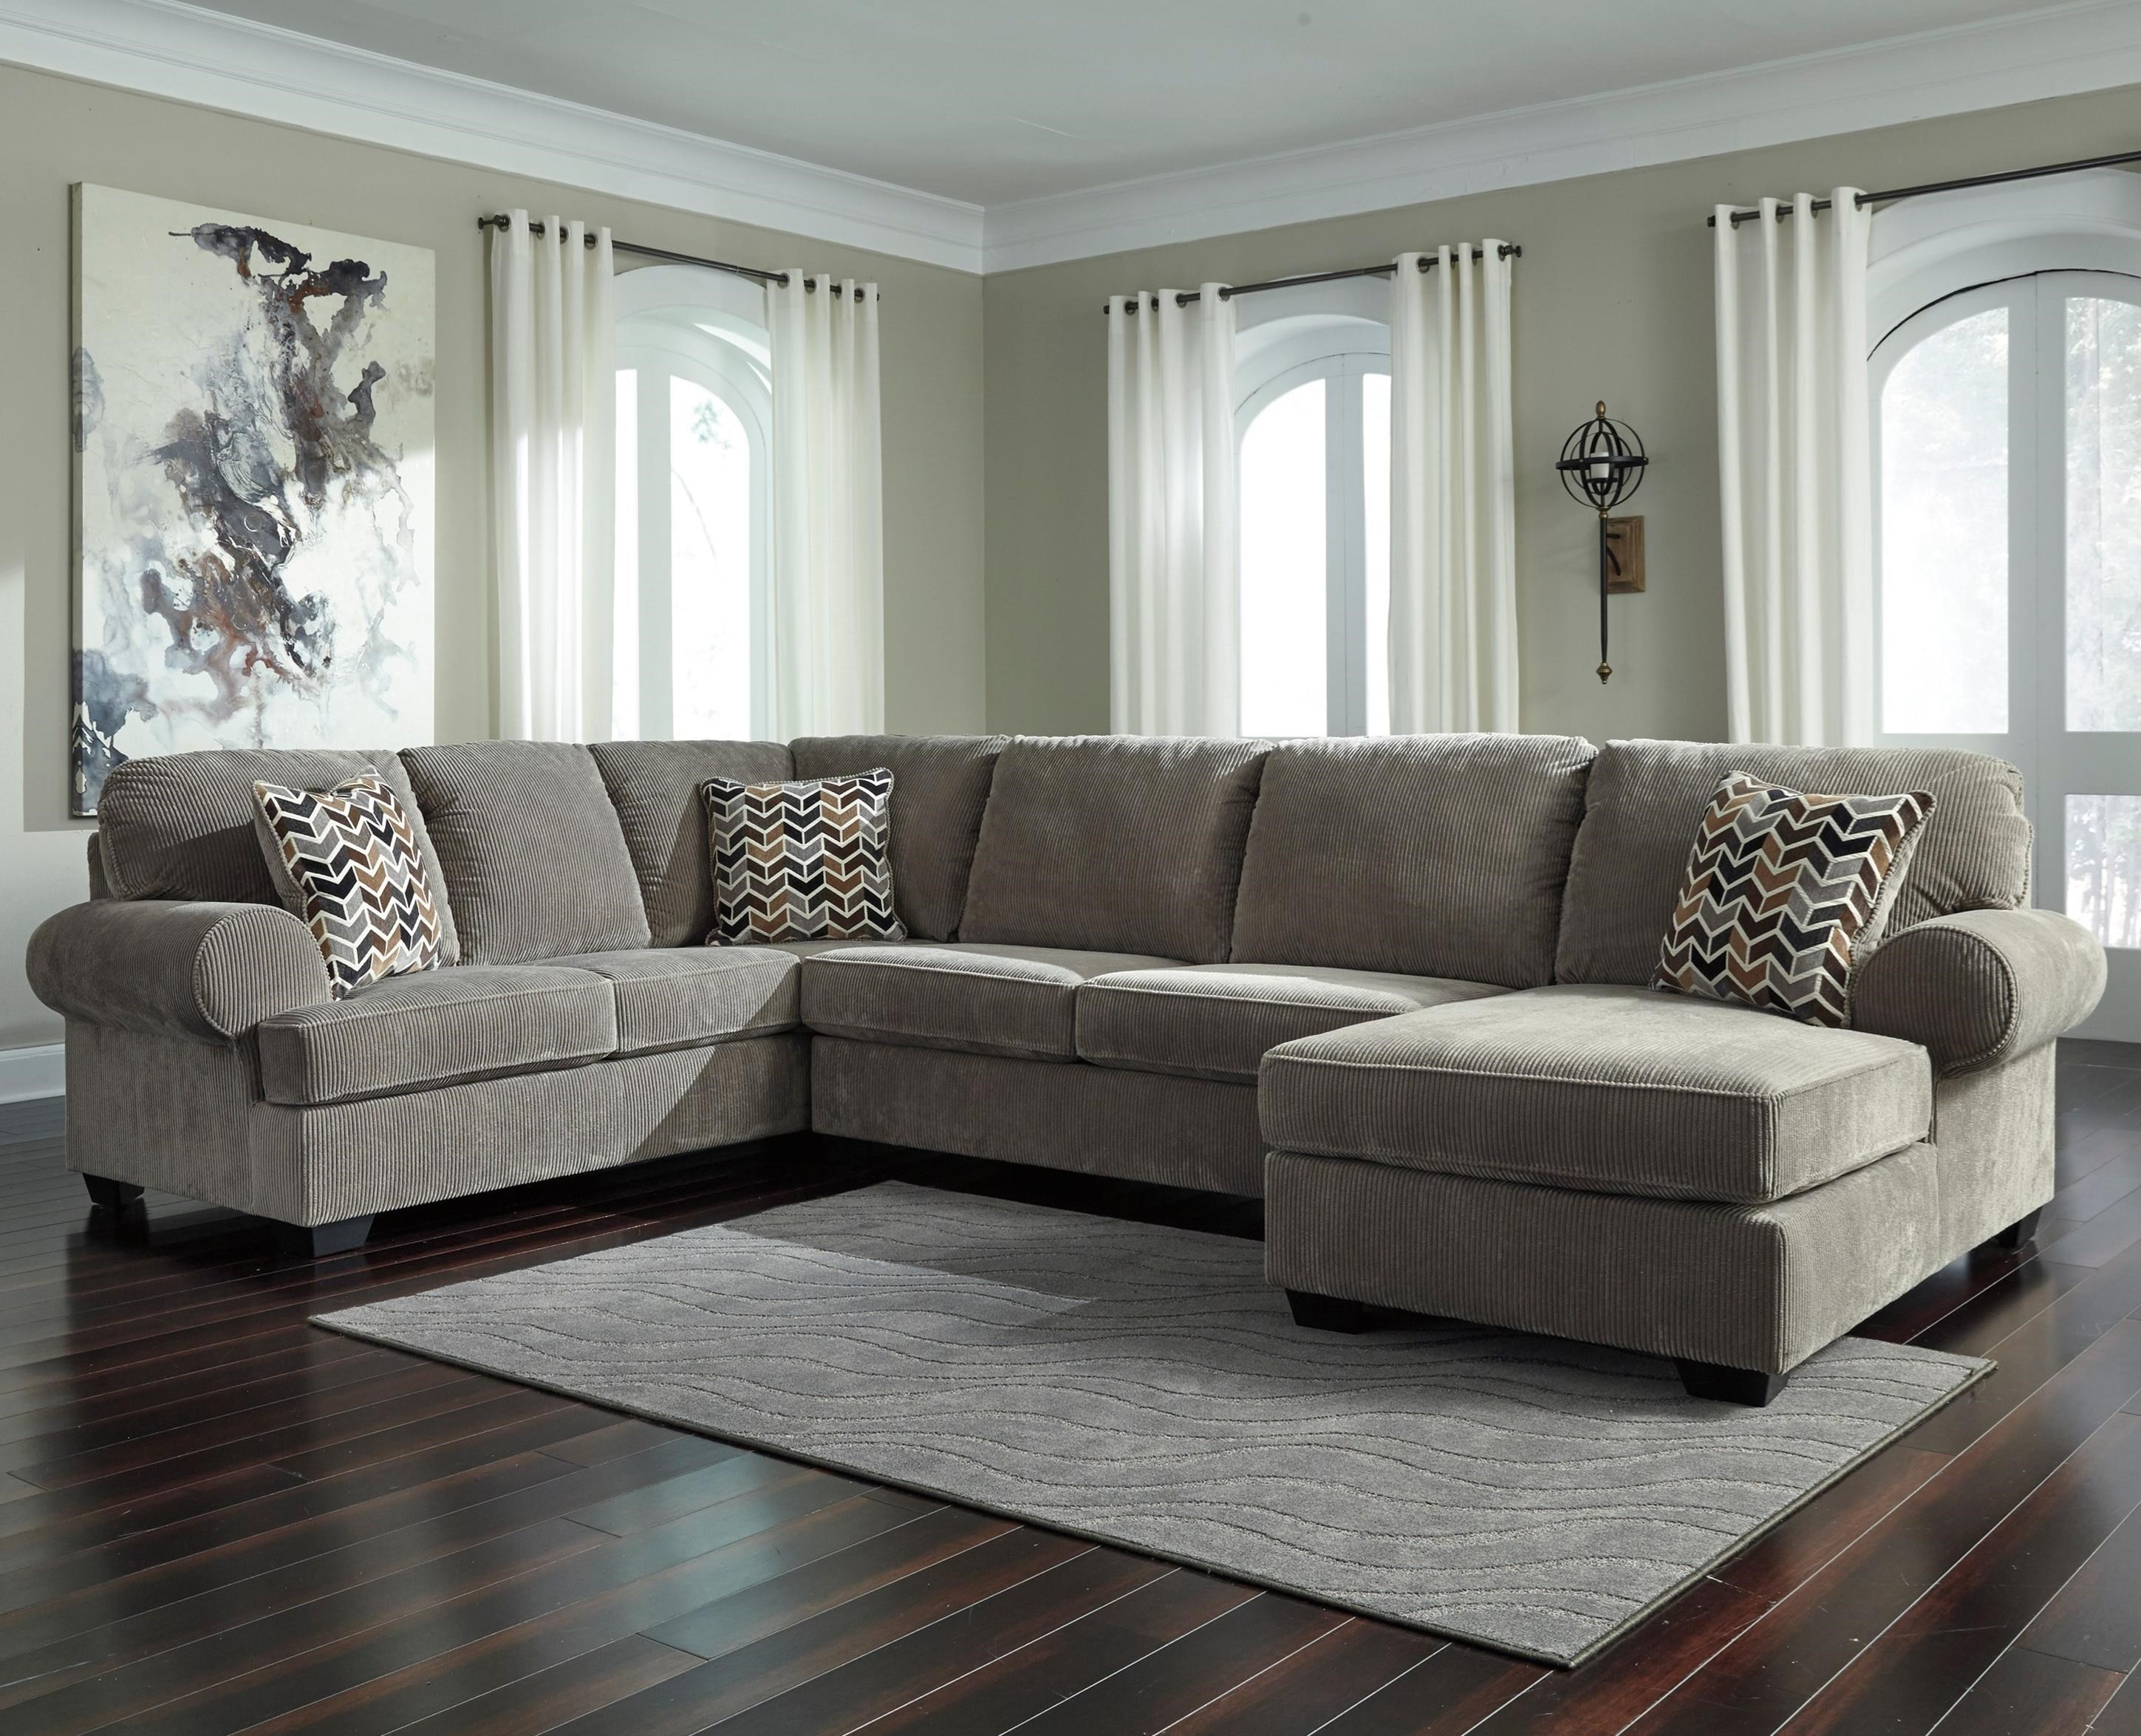 Signature Design By Ashley Jinllingsly Contemporary 3 Piece Sectional With Right Chaise In Corduroy Fabric Royal Furniture Sectional Sofas